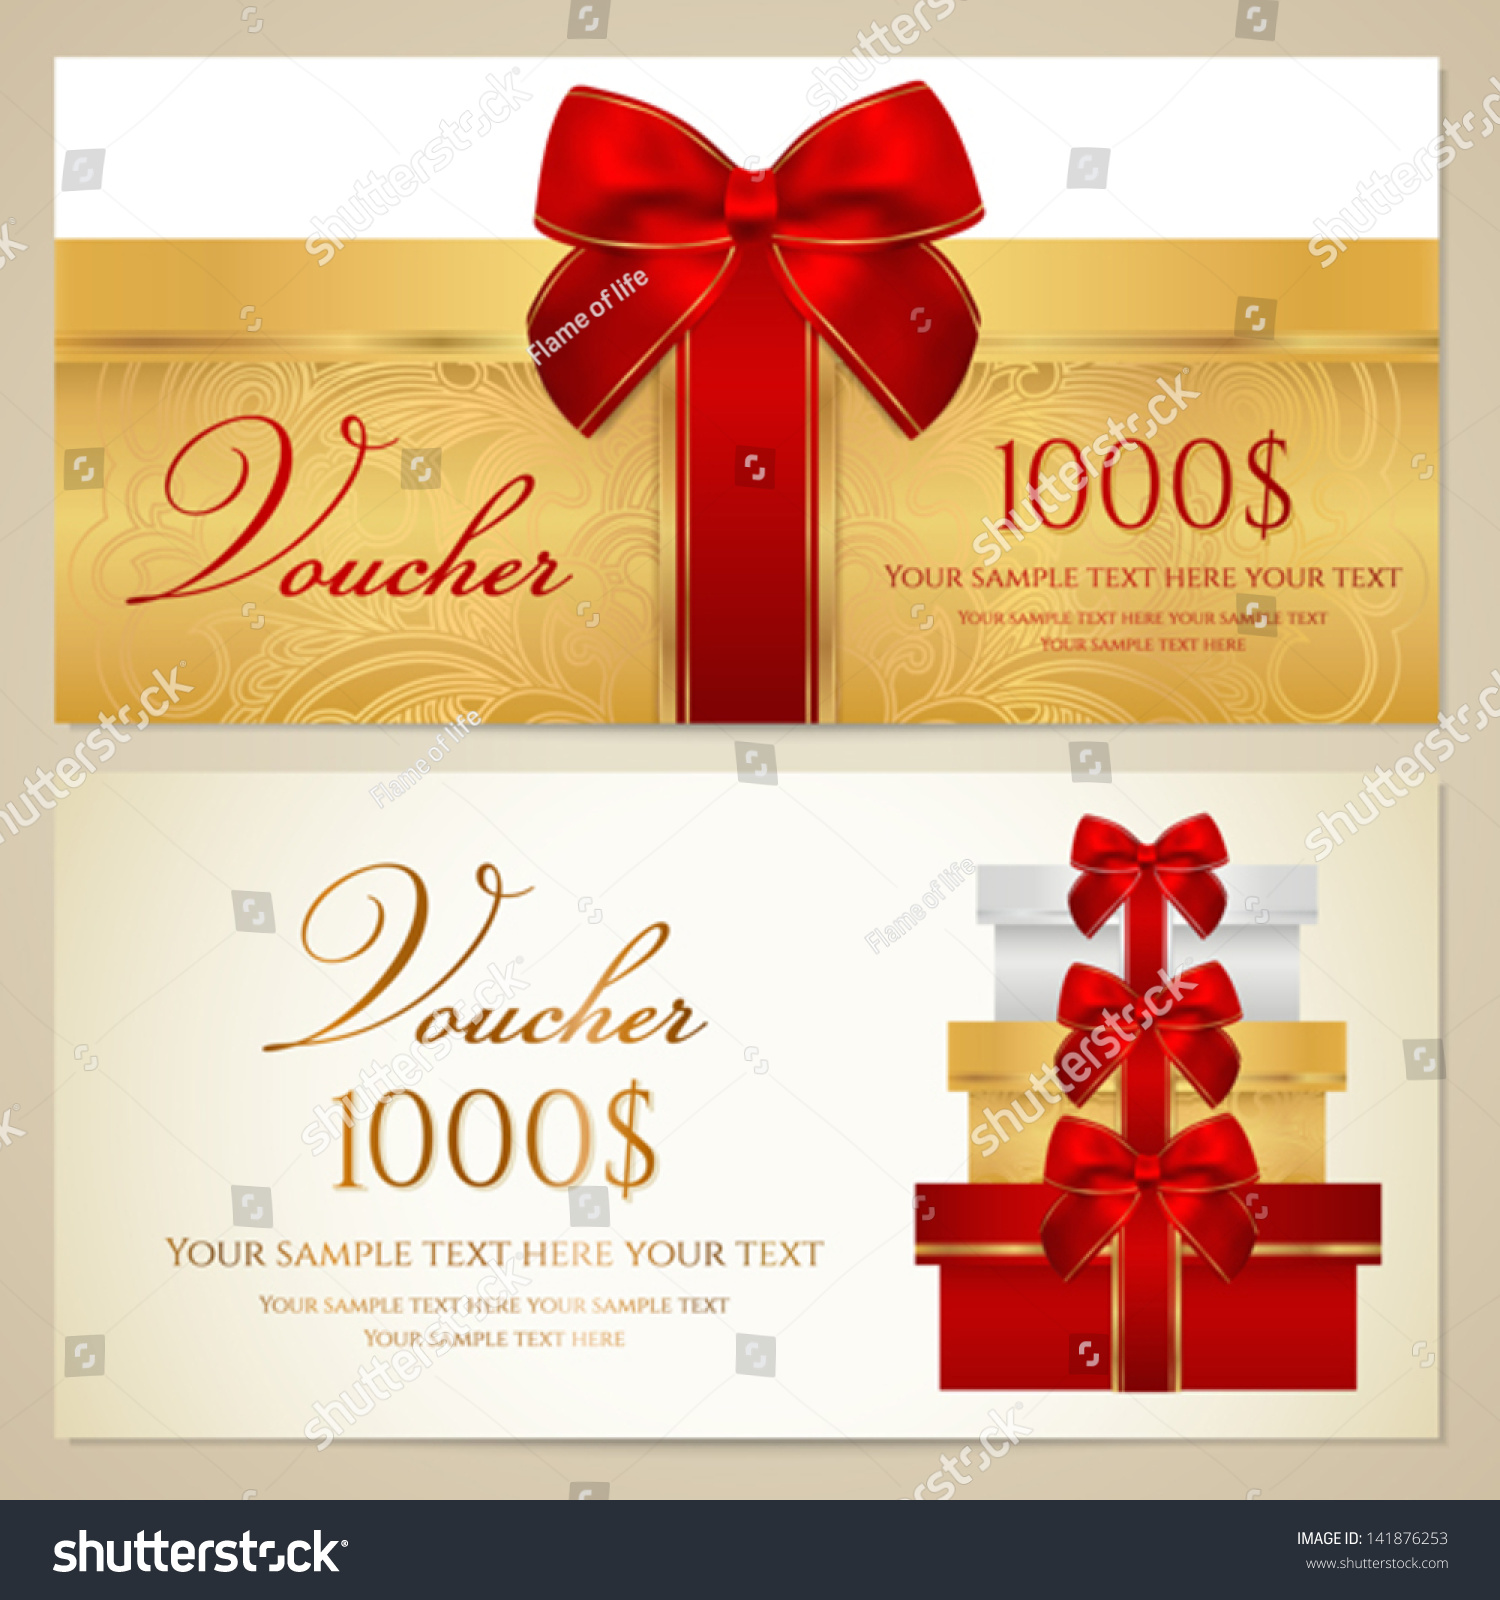 voucher gift certificate coupon template present stock vector voucher gift certificate coupon template present boxes bow